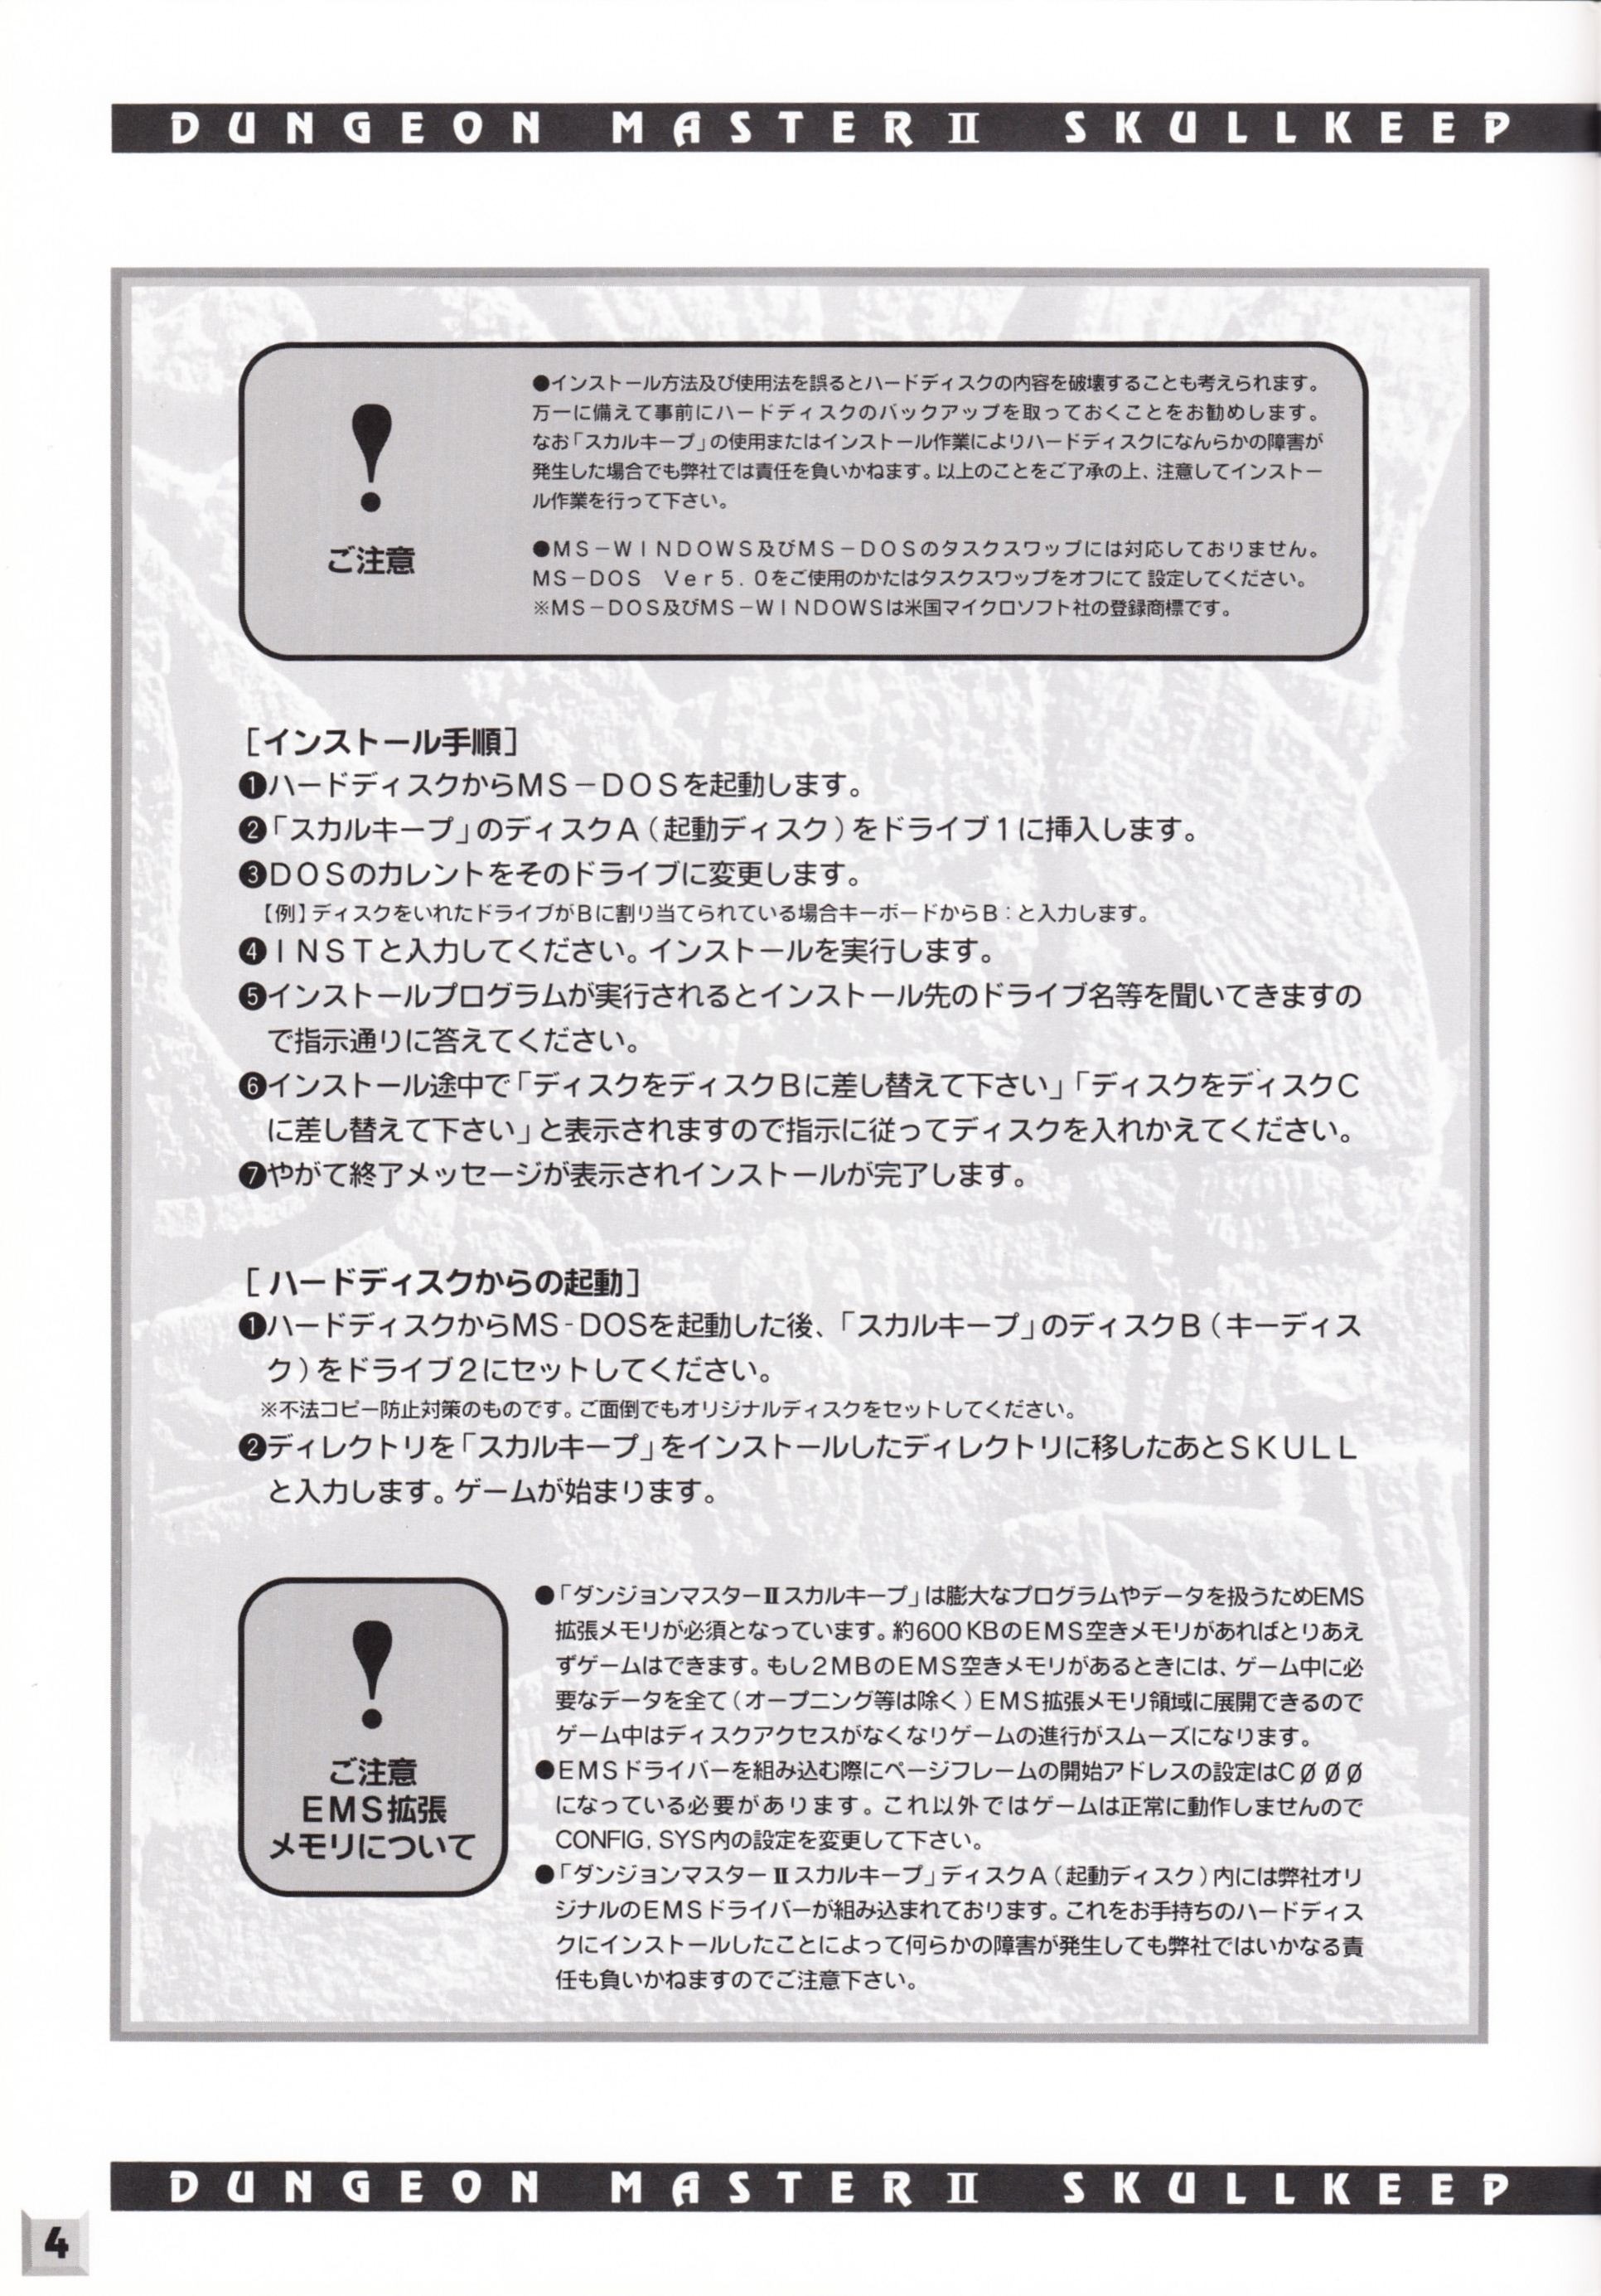 Game - Dungeon Master II - JP - PC-9801 - 3.5-inch - An Operation Manual - Page 006 - Scan